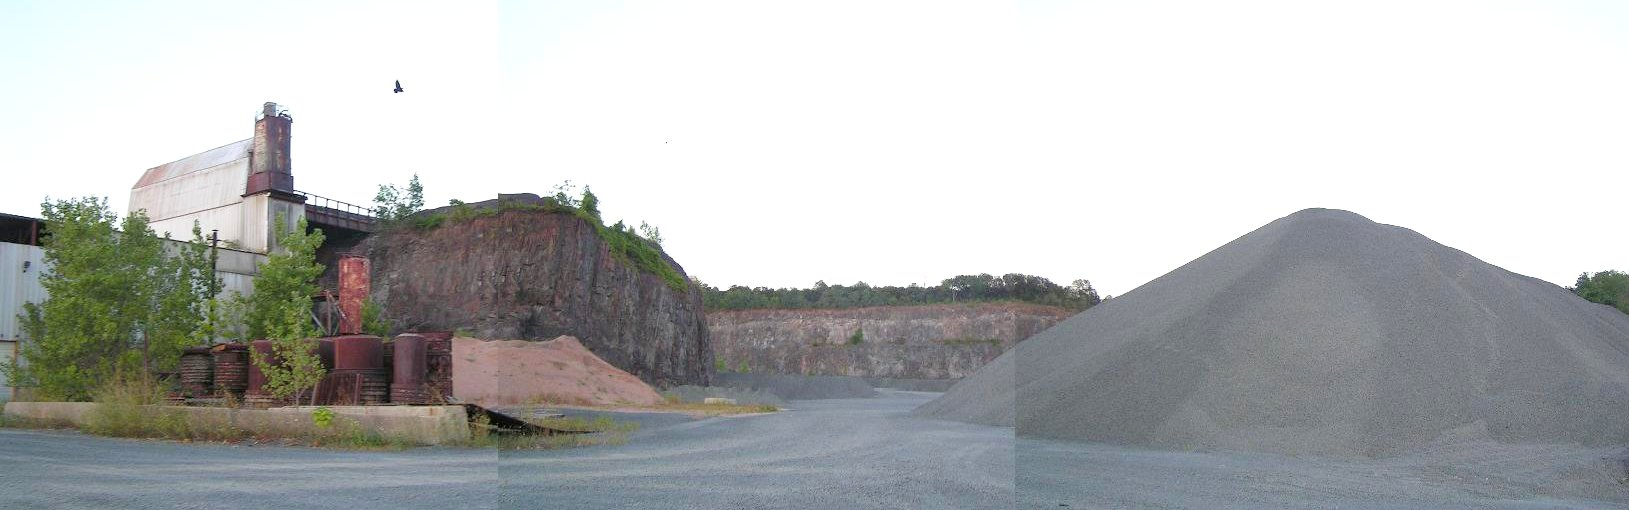 Tilco Quarry, Newington, Conn.